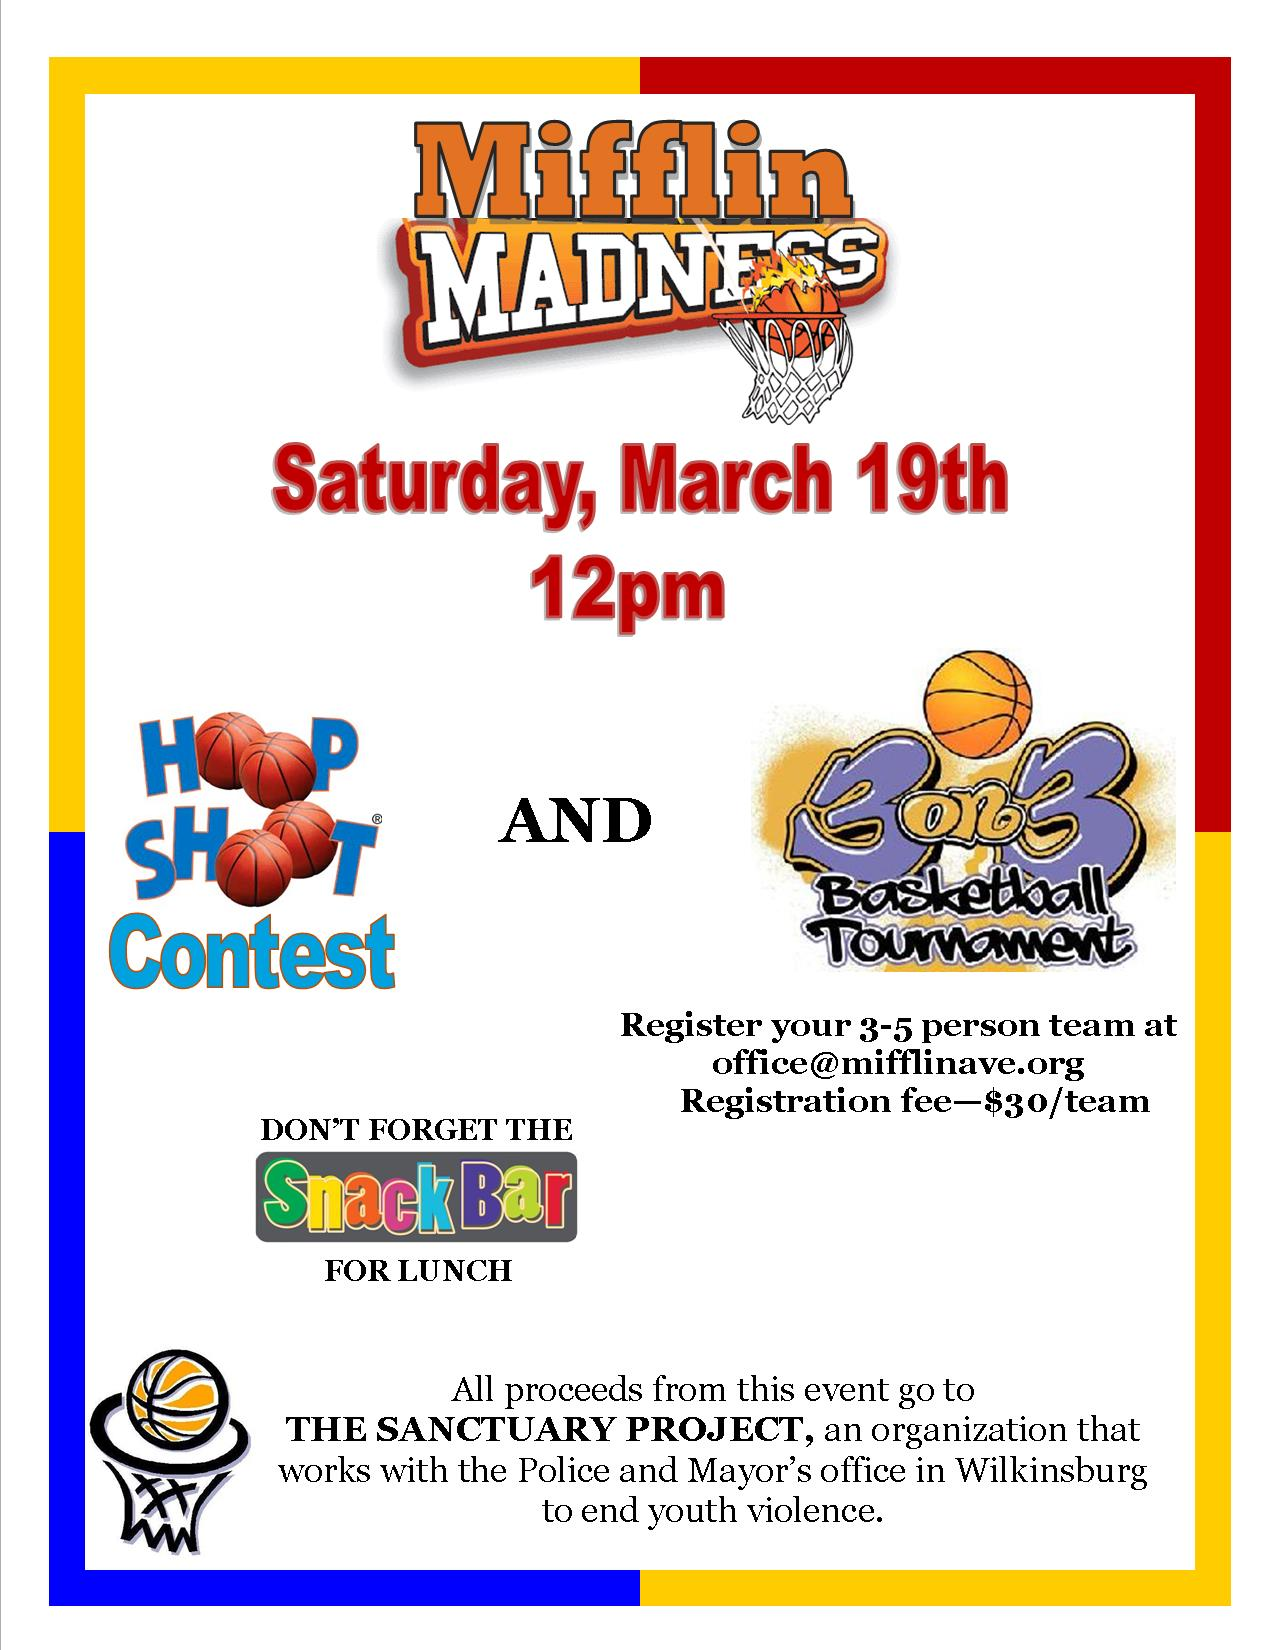 Mifflin March Madness Flyer 2016 Image